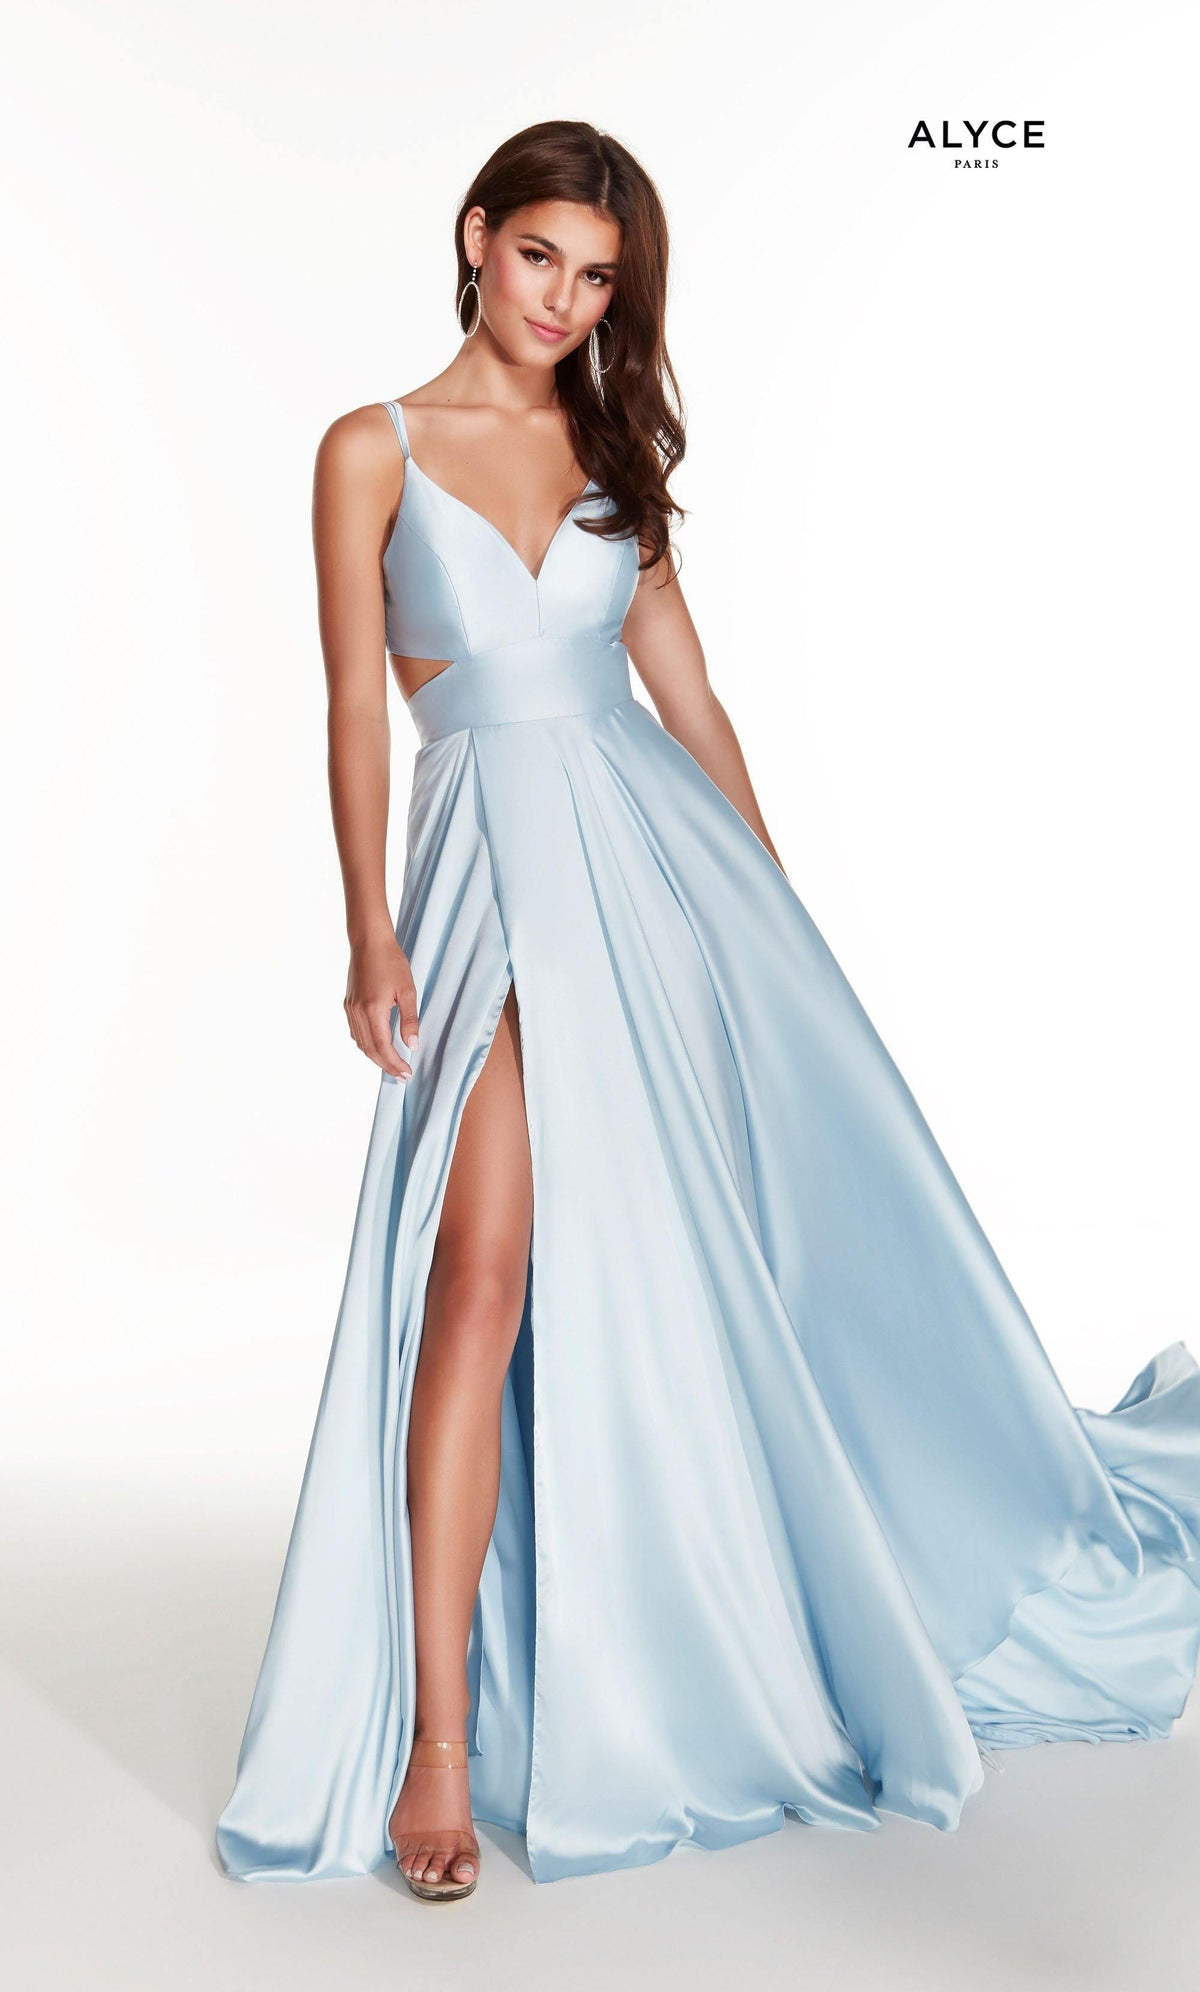 Glacier Blue flowy satin chiffon prom dress with a V neck, side cutouts, and front slit